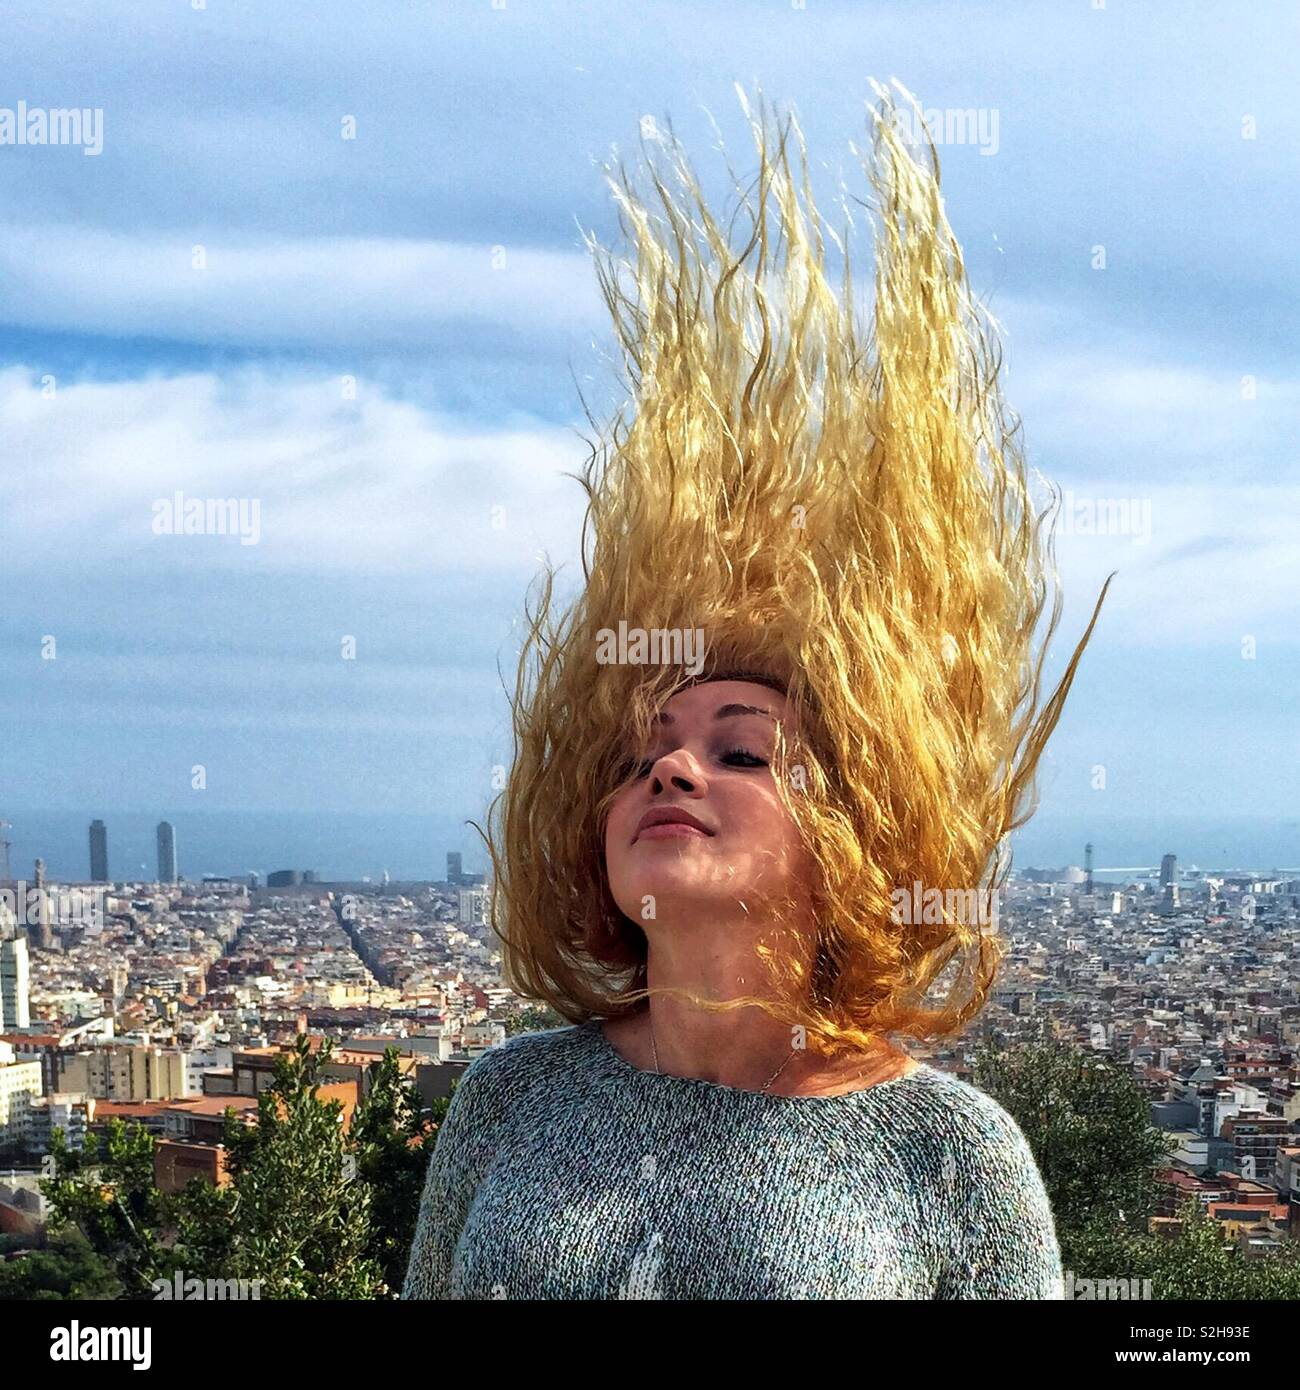 Portrait of a blonde girl with long curly hair that the wind is waving. She stands on a hill, below the city and the sea is visible. - Stock Image